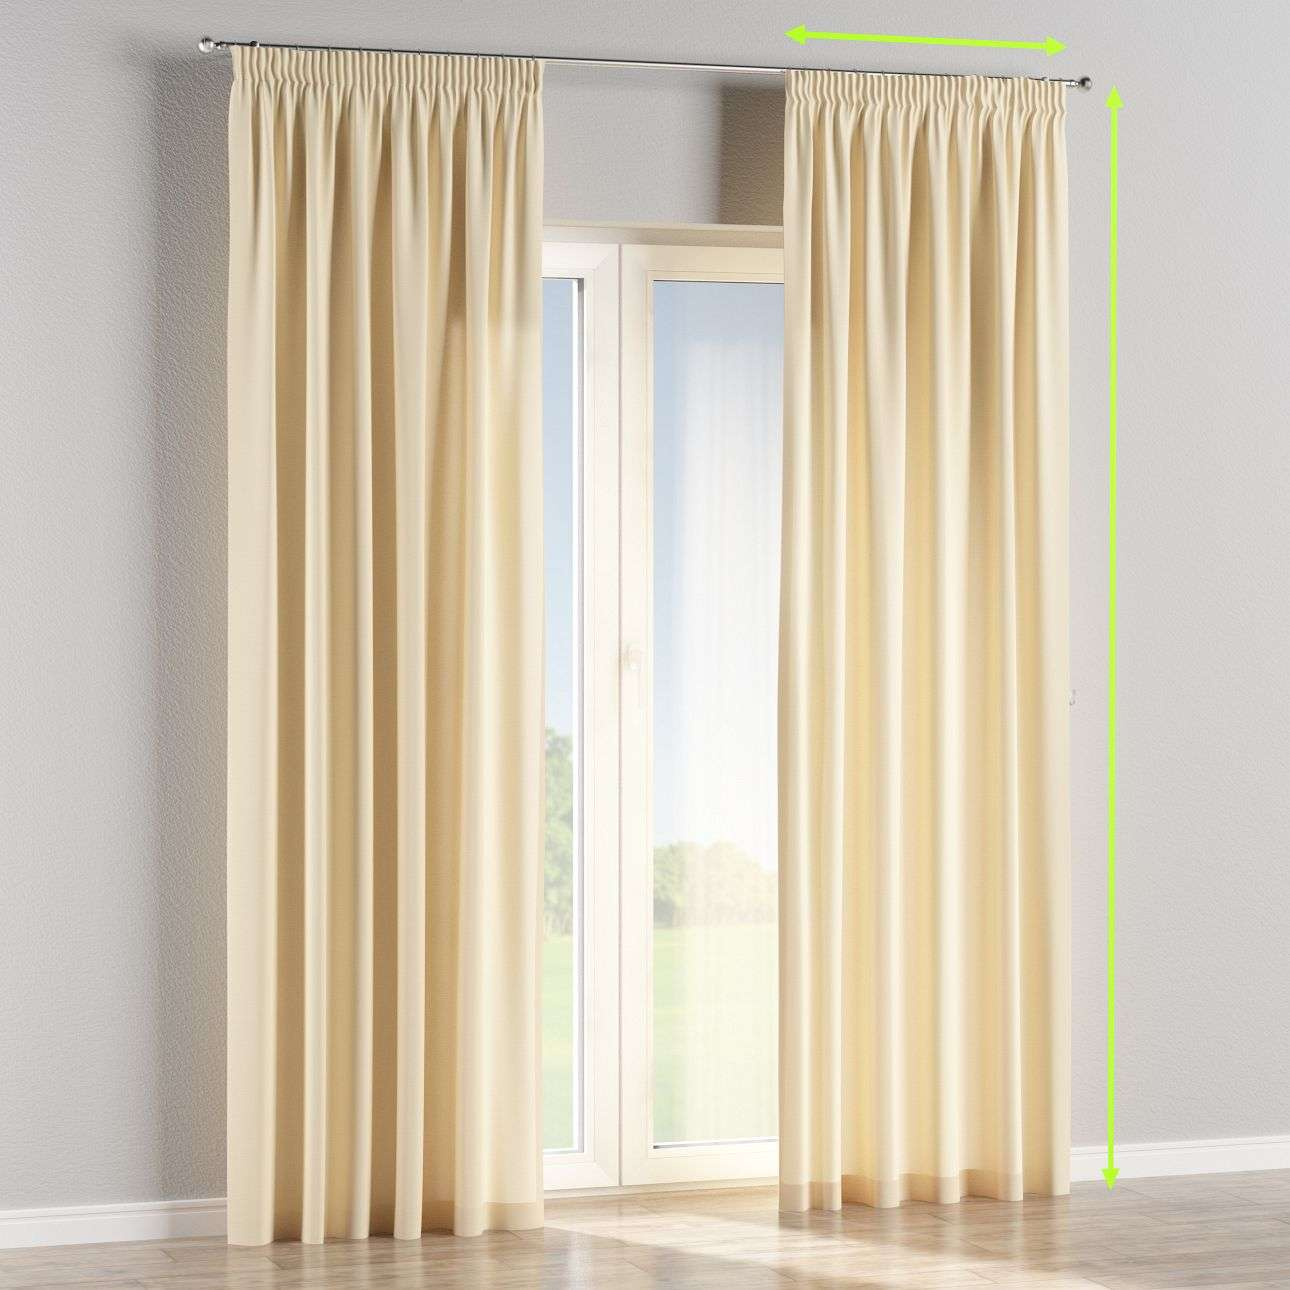 Pencil pleat lined curtains in collection Cotton Panama, fabric: 702-29